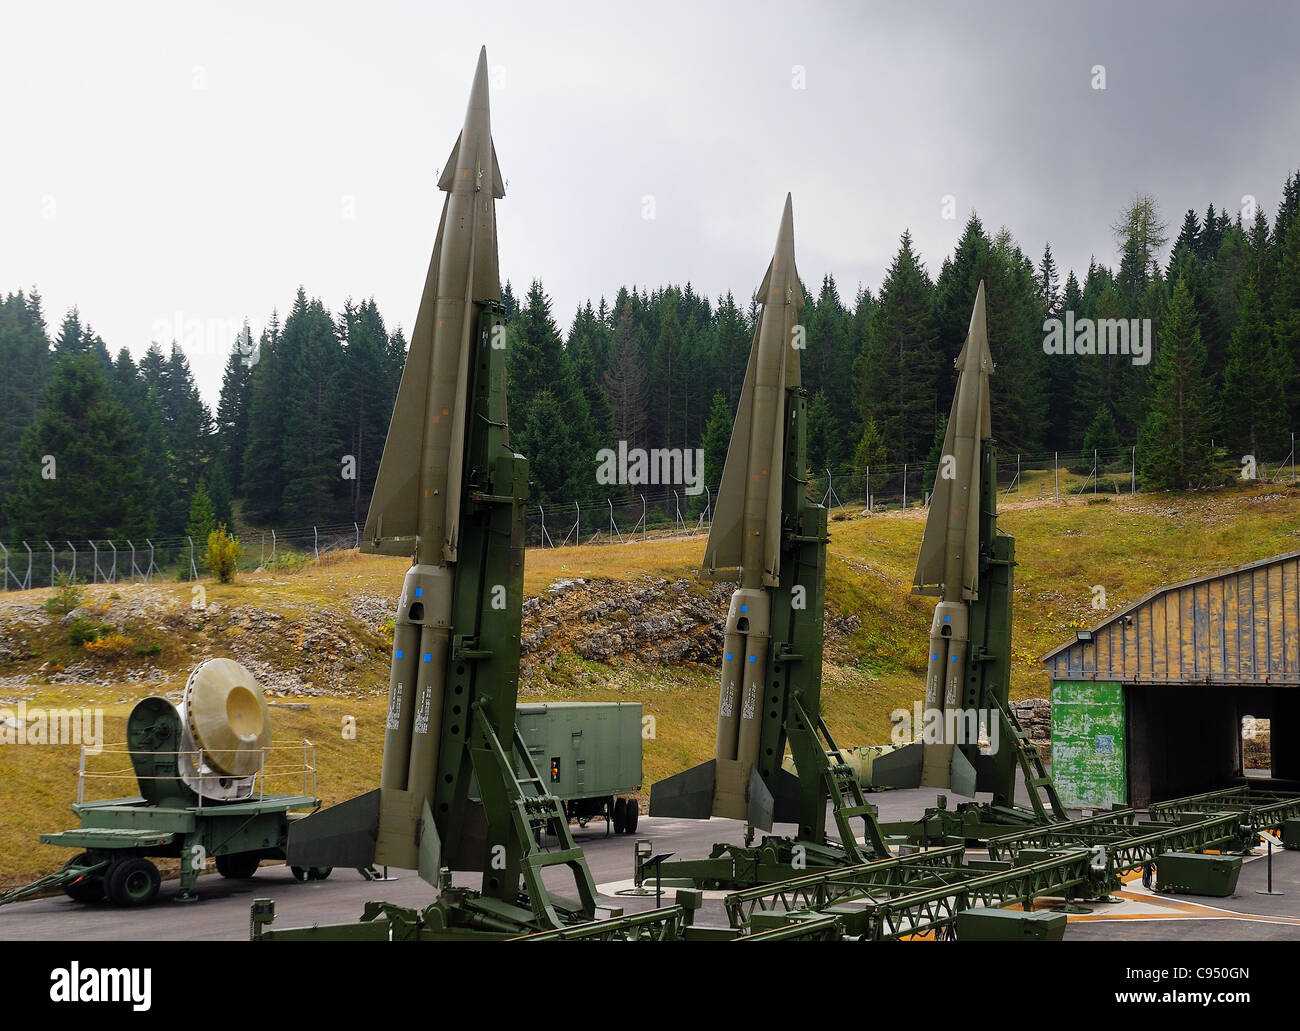 Cold war. Ex NATO base Tuono ( Thunder). Missiles Nike-Hercules on launch pads. - Stock Image